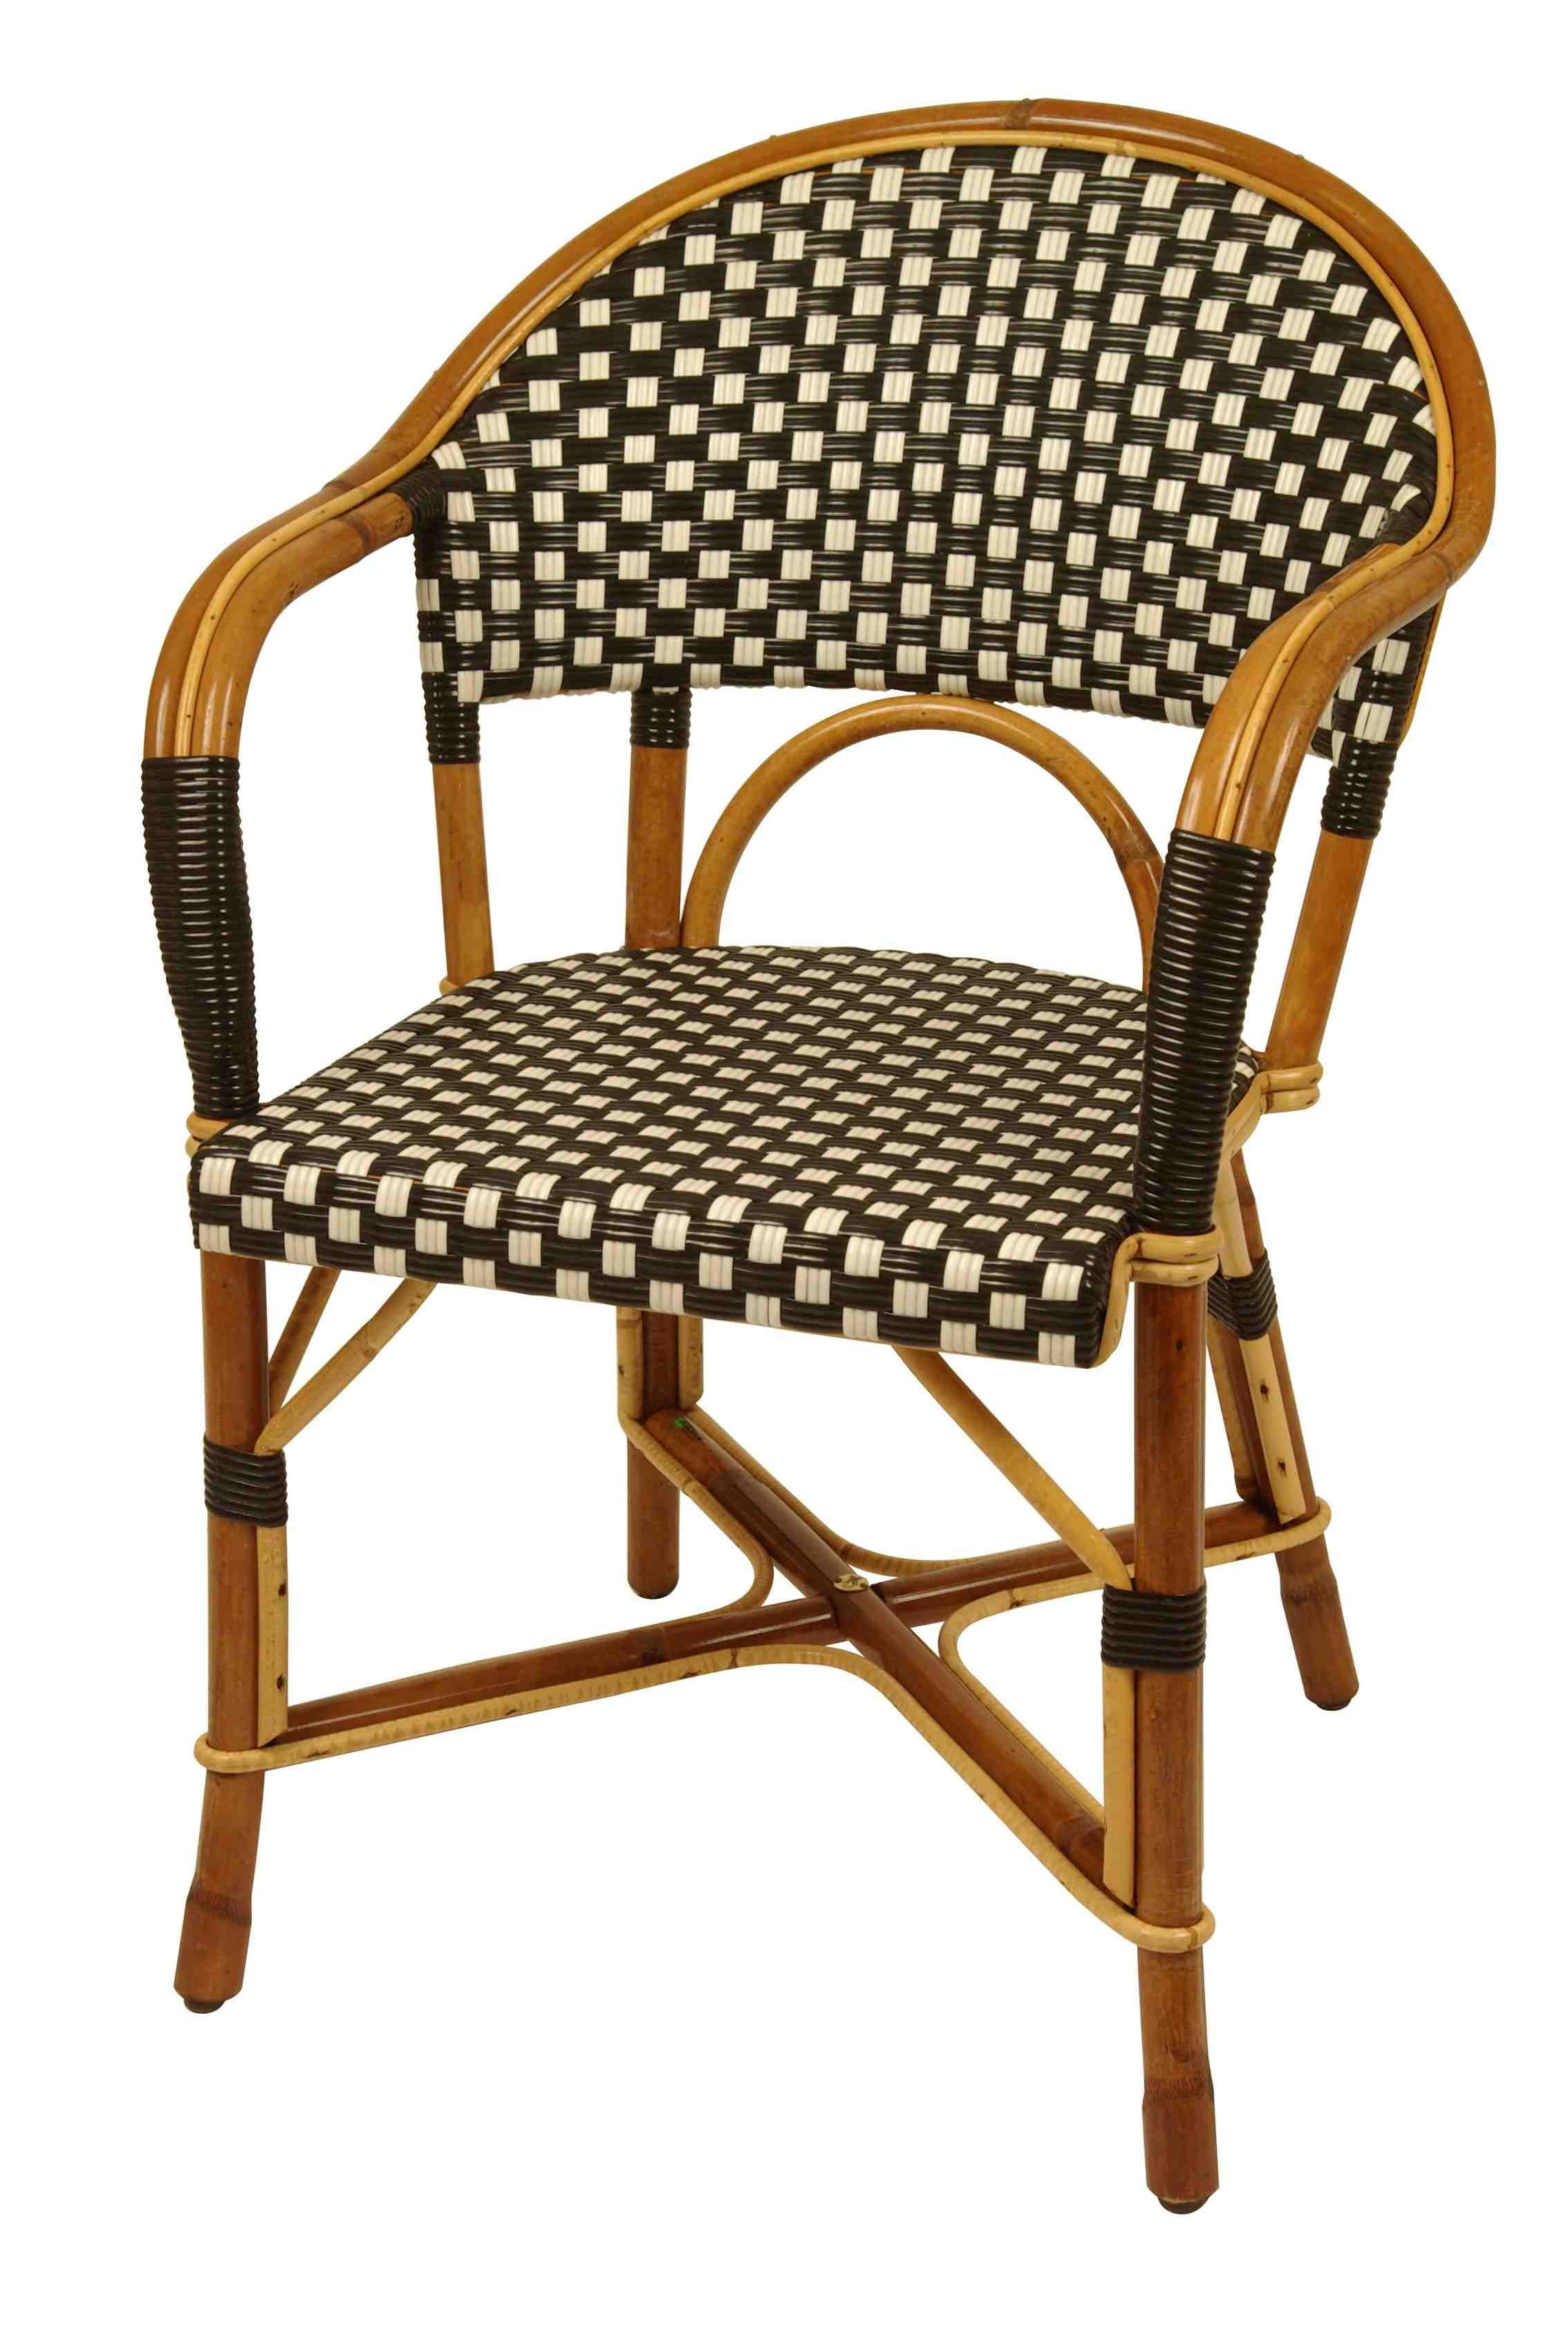 Fauteuil MATIGNON French Bistro Chair from Drucker Collection